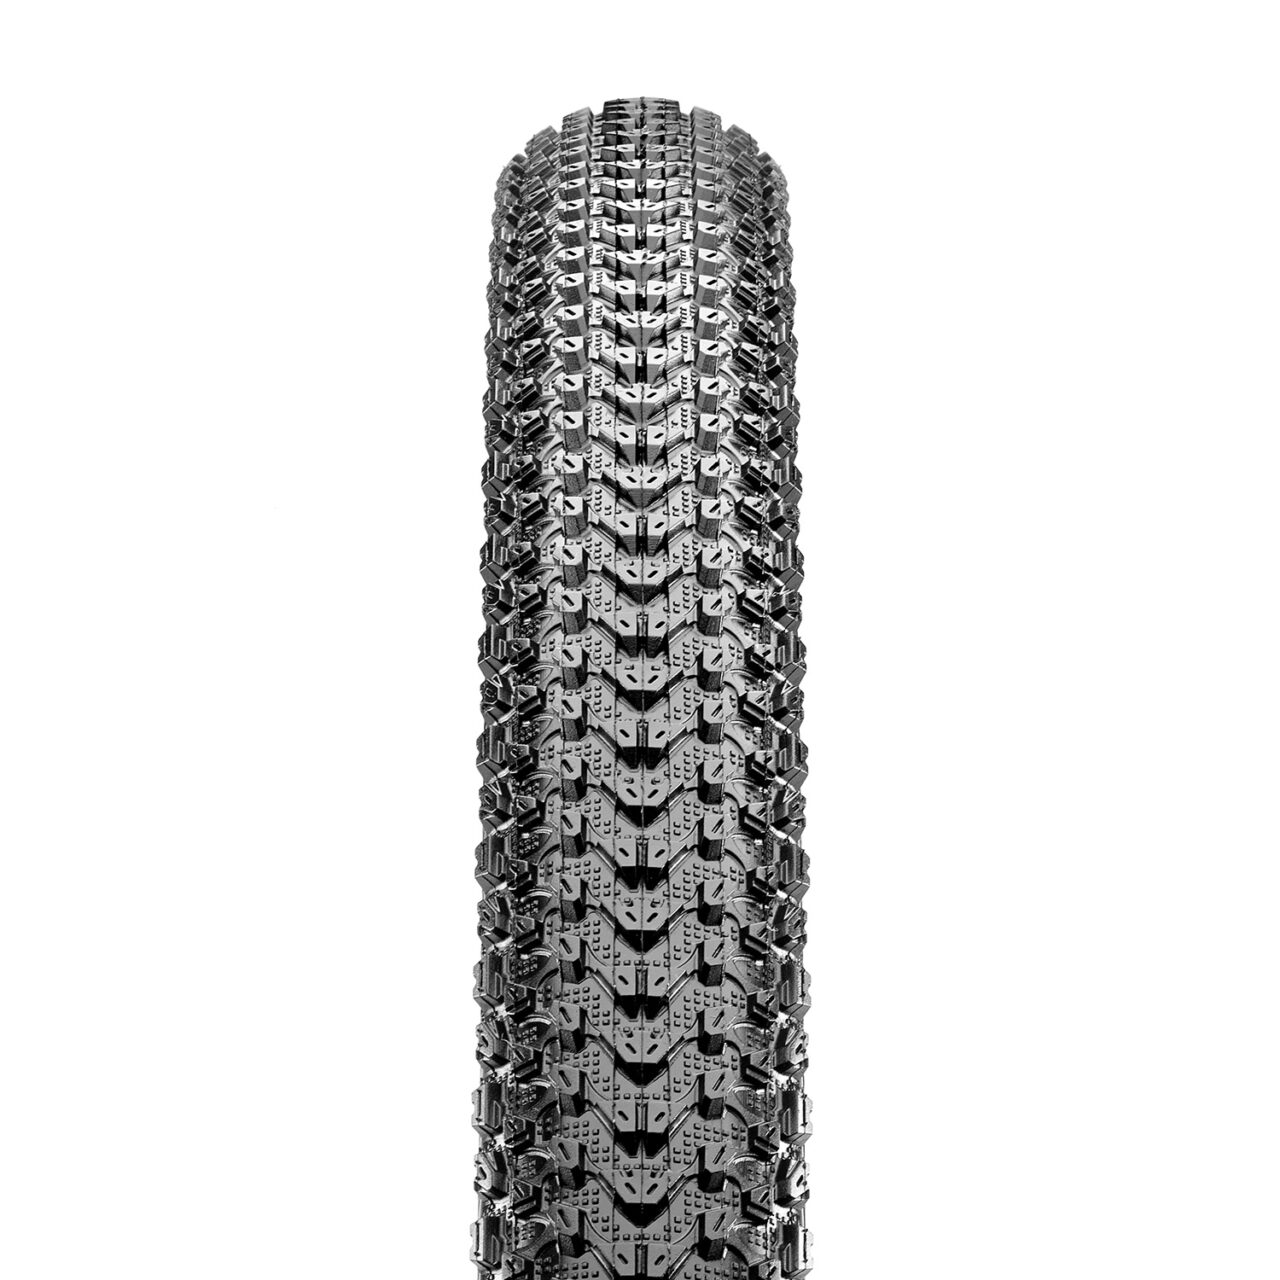 Maxxis Pace bicycle tire tread